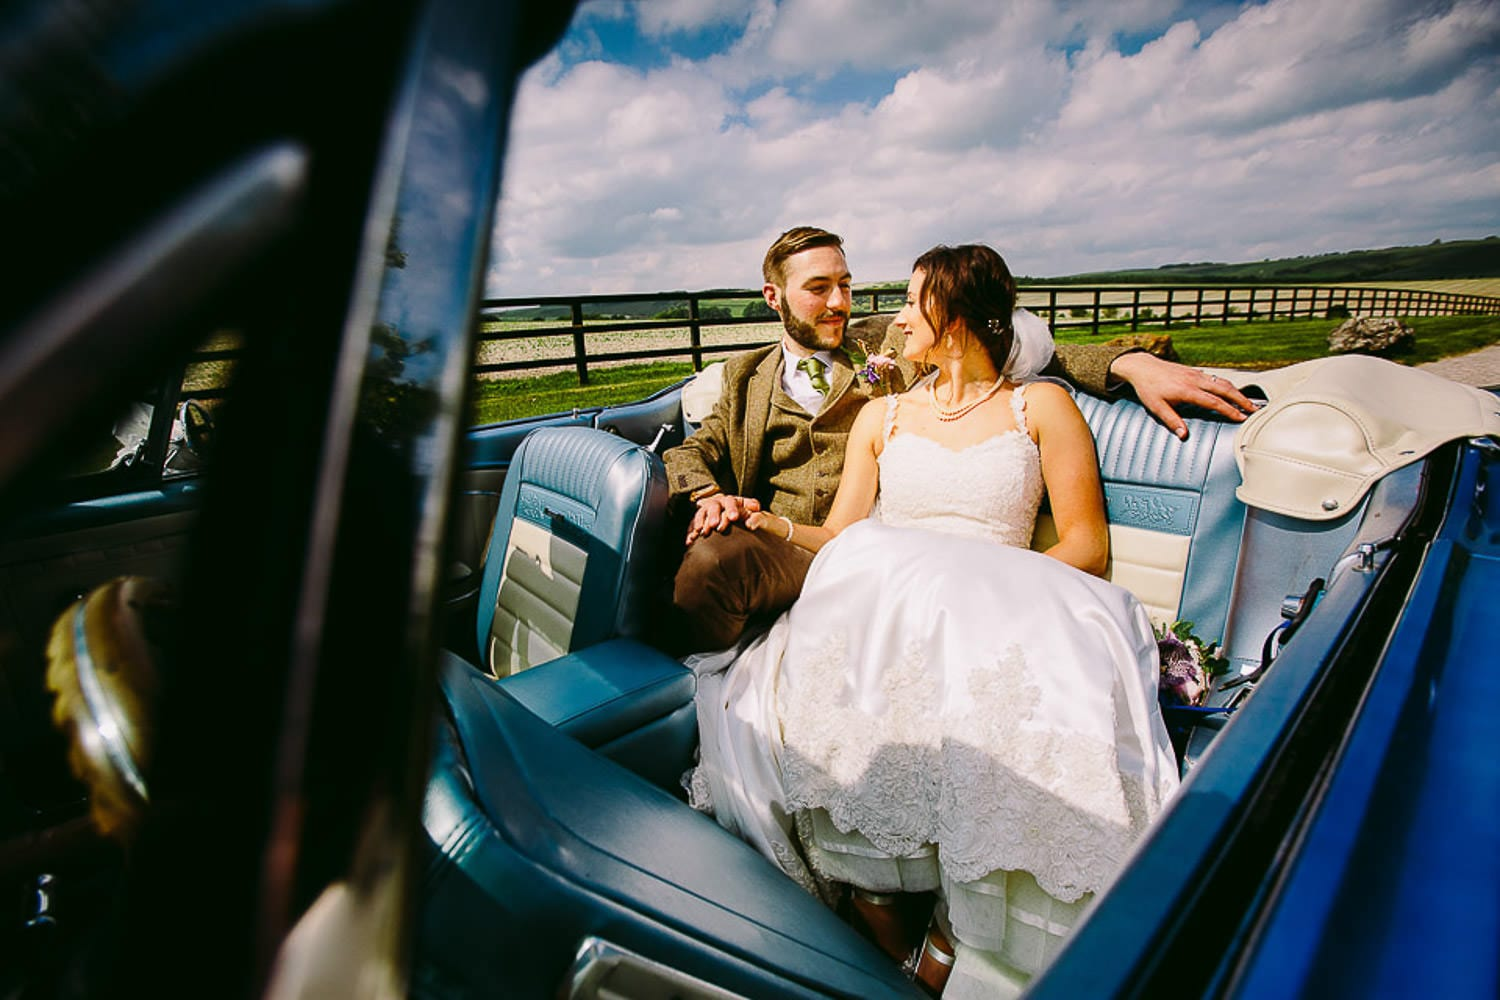 A portrait of the bride and groom in the wedding car